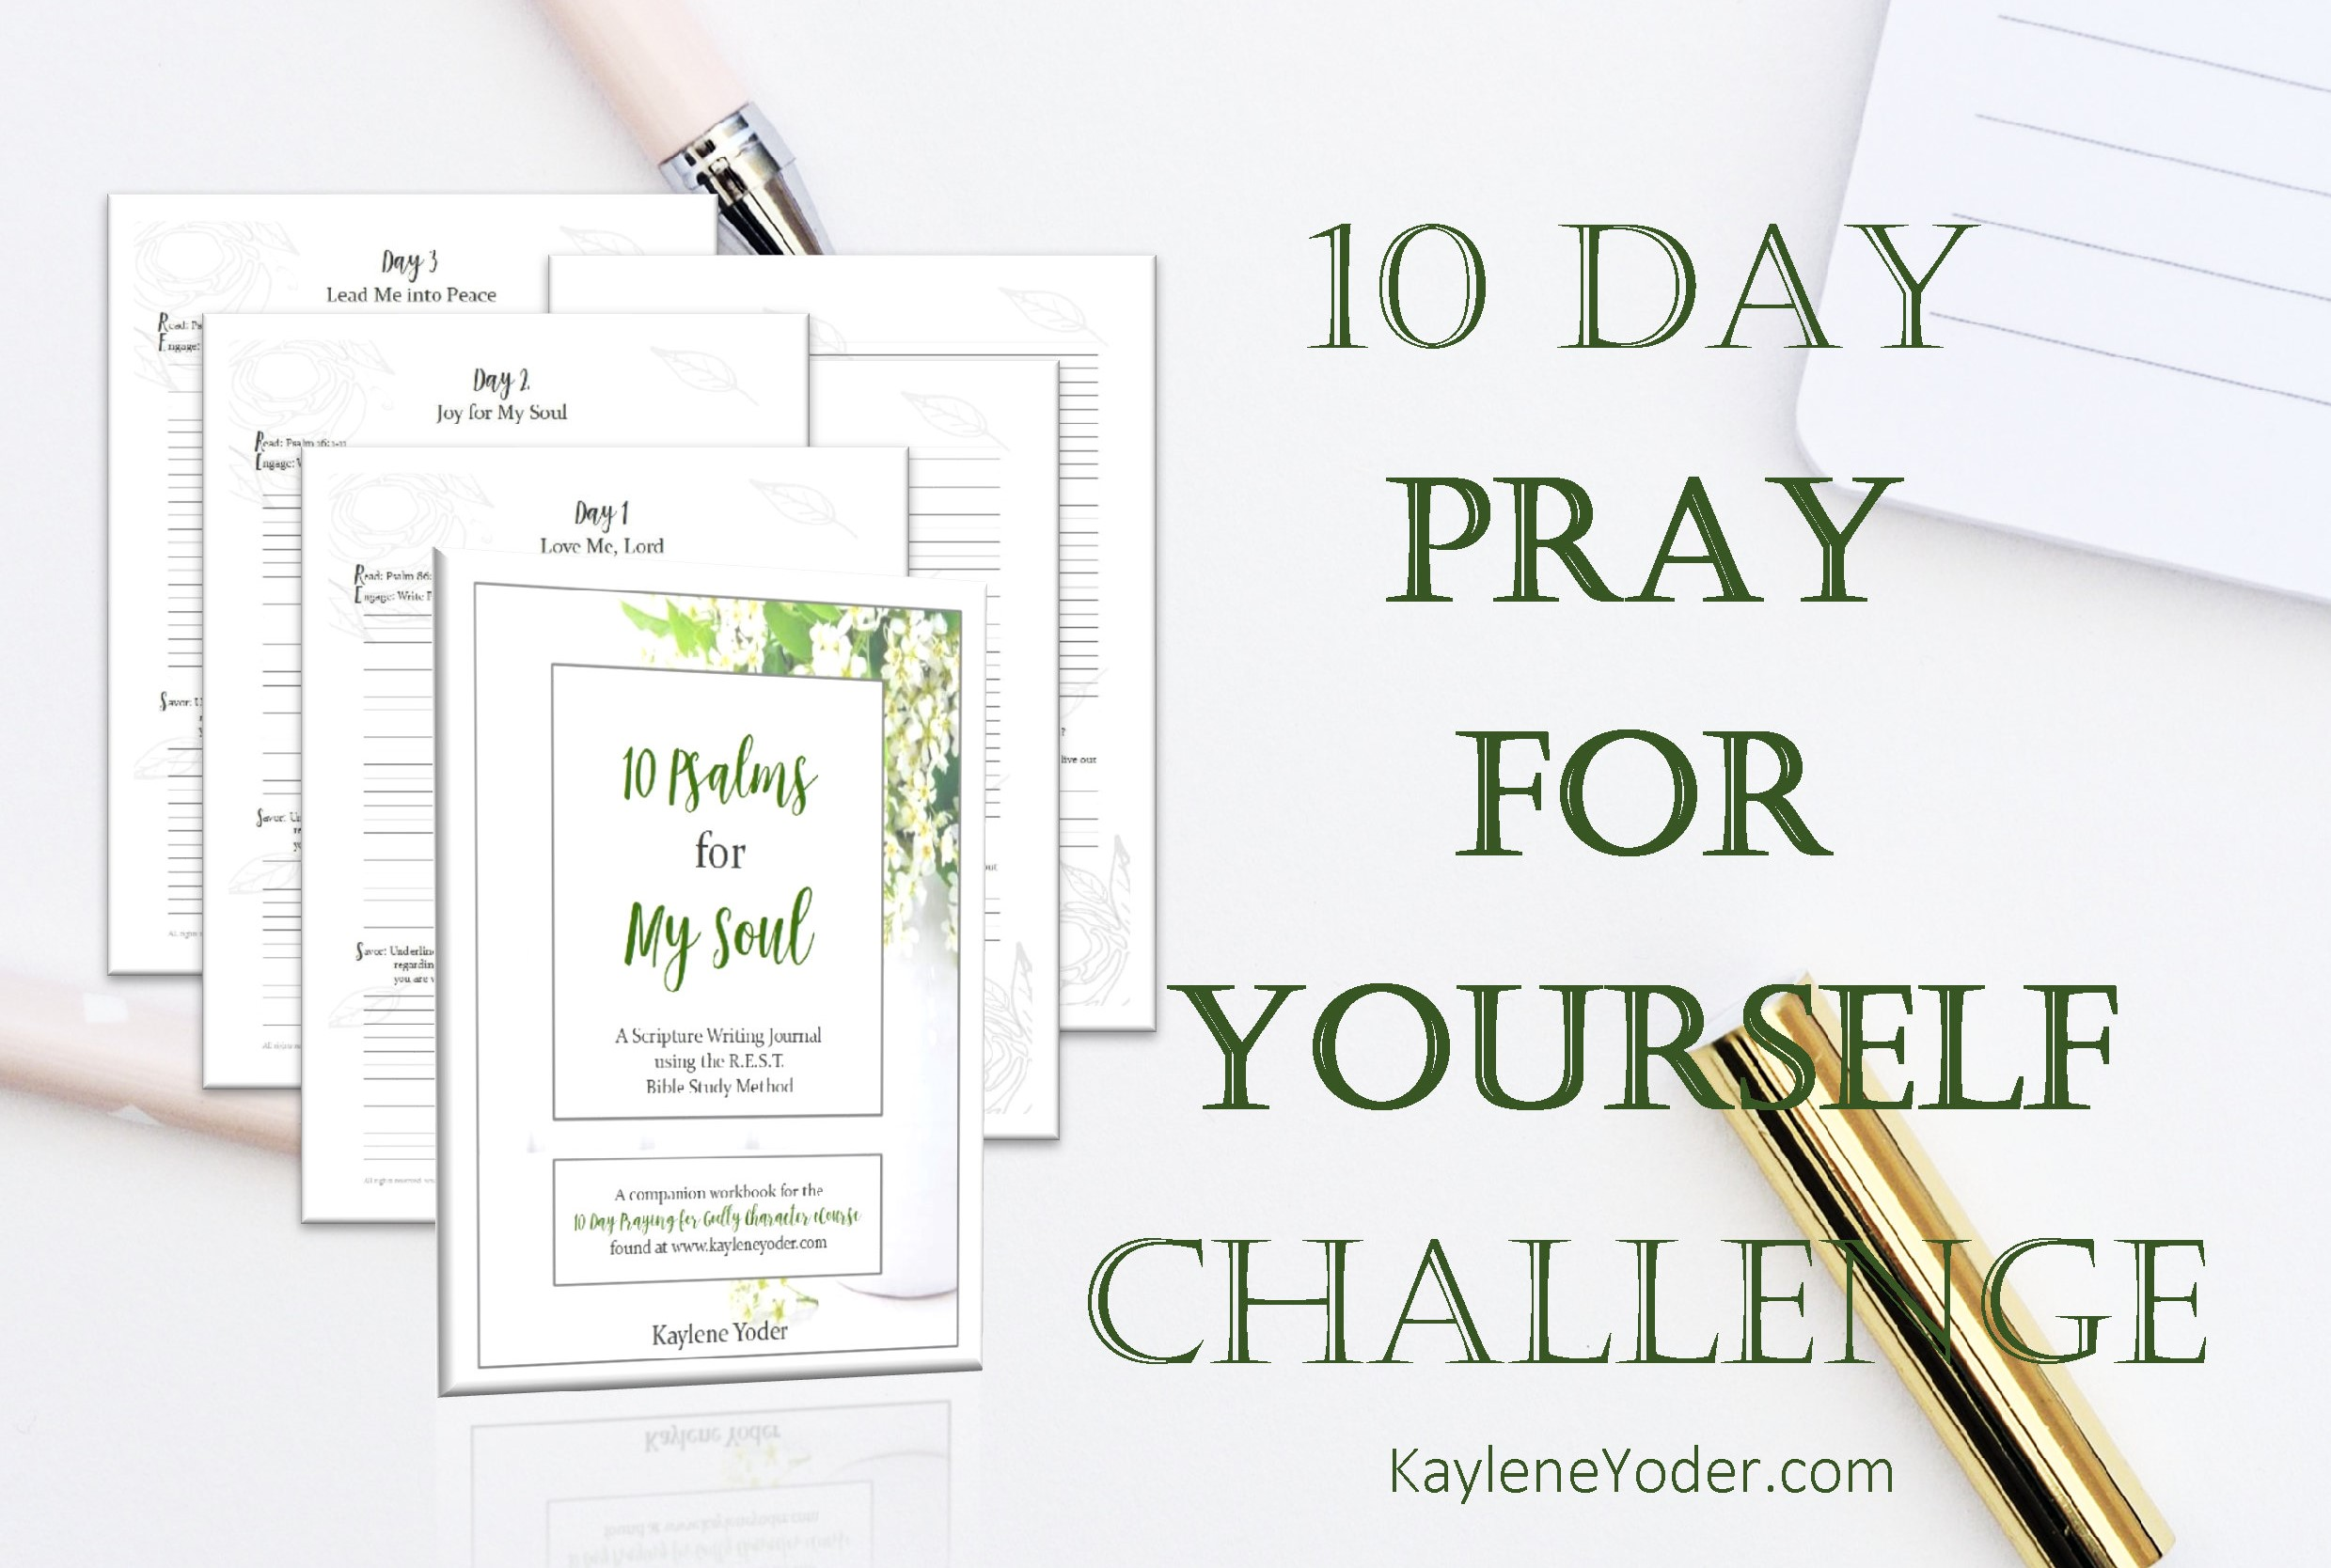 REST Bible Study Method - Kaylene Yoder